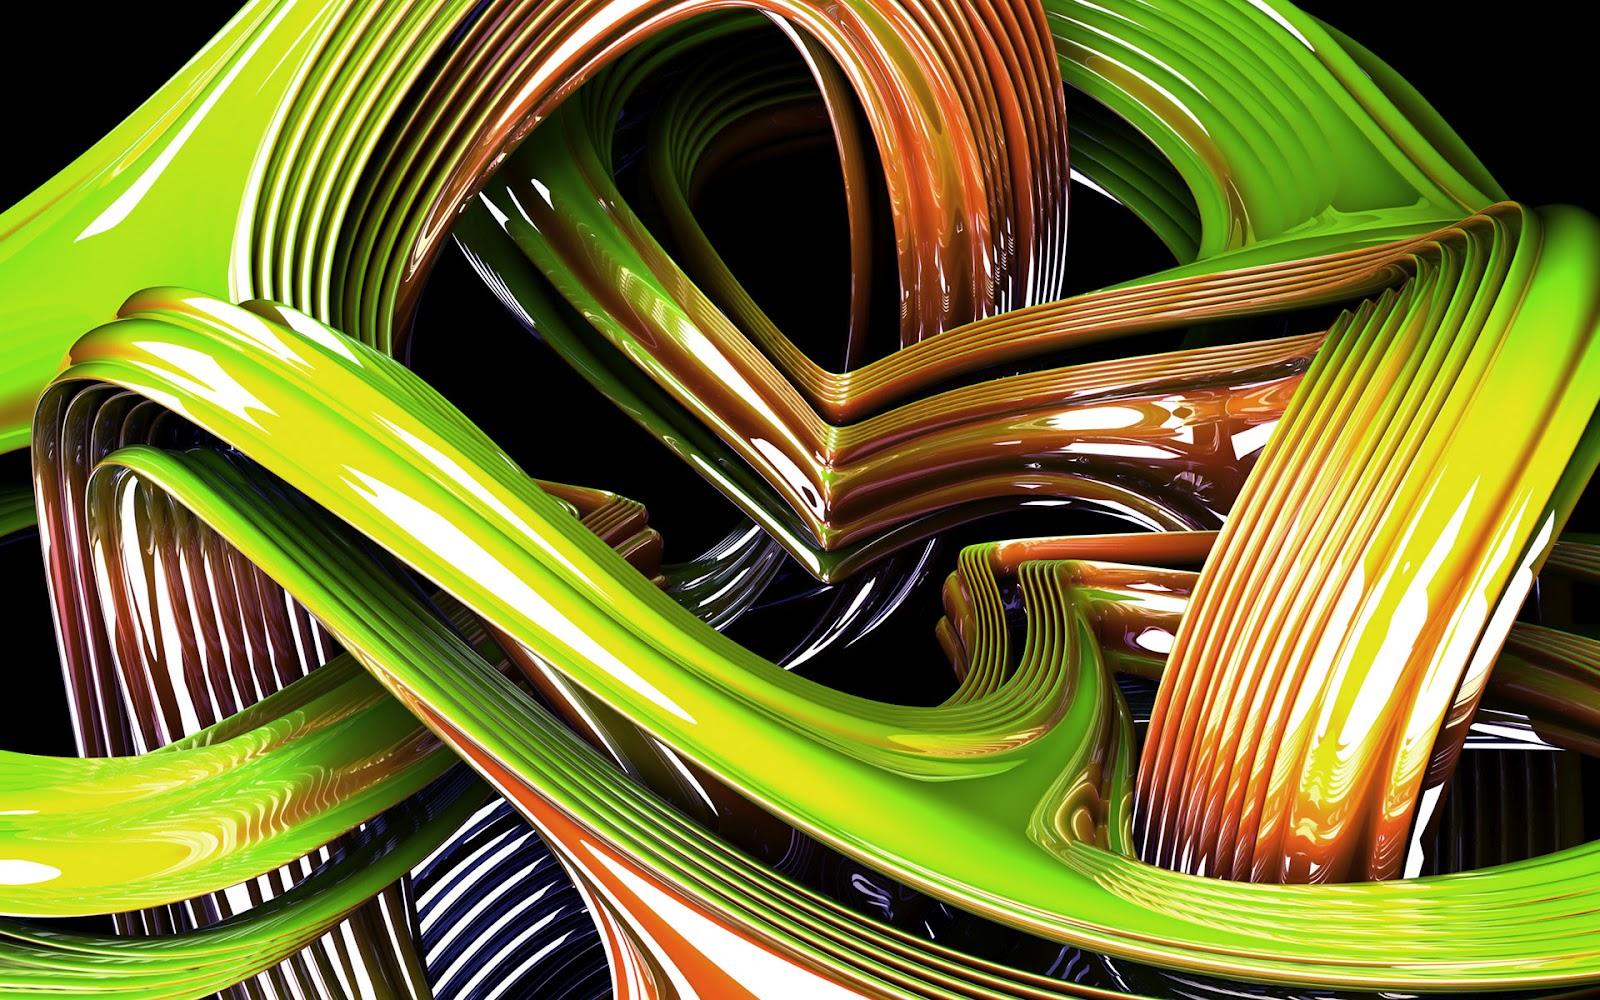 Great Abstract 3d Wallpaper Graphic